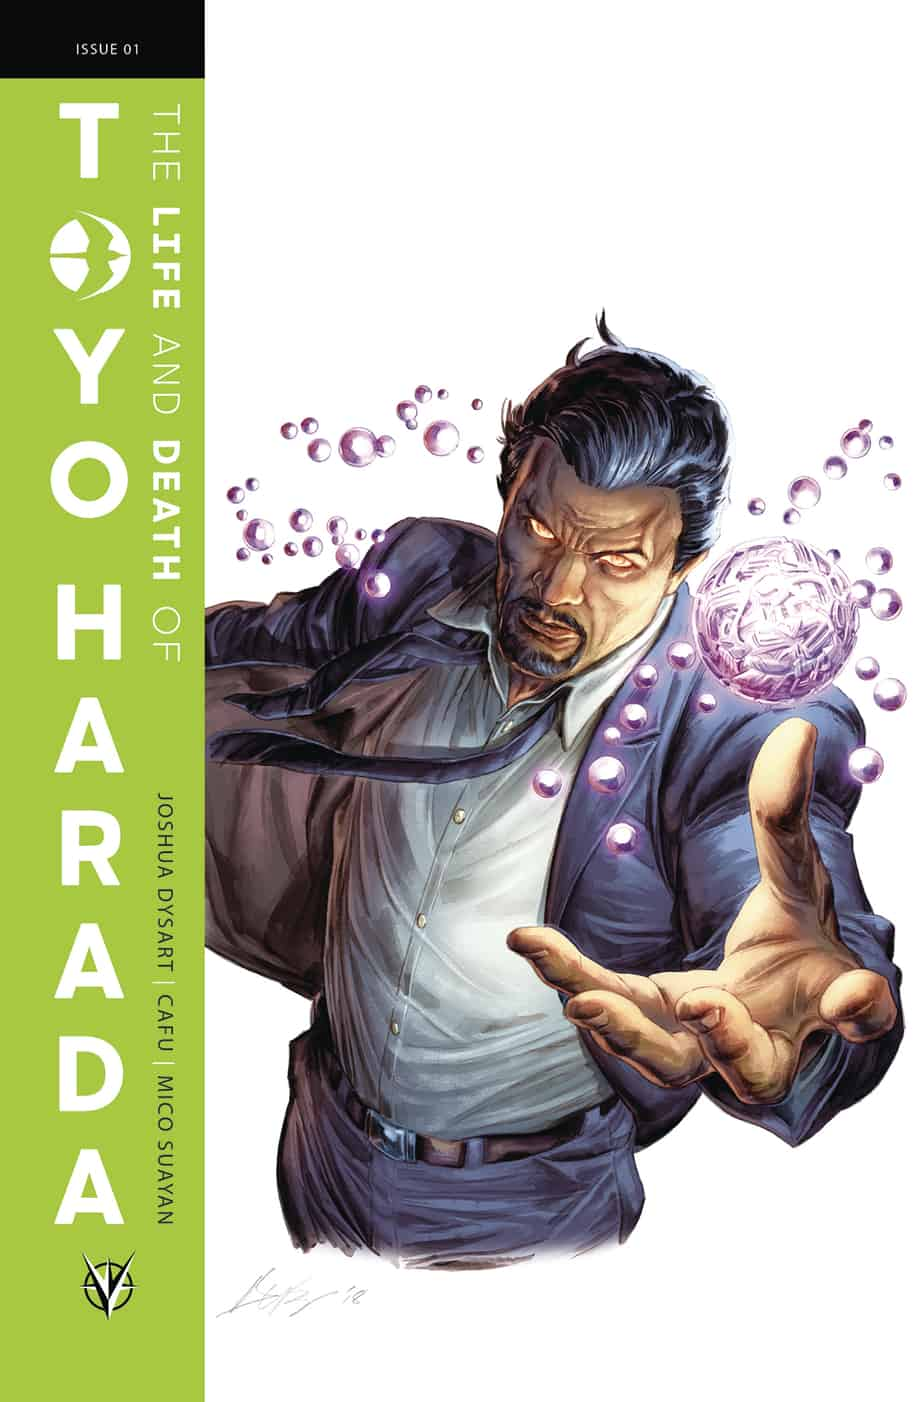 THE LIFE AND DEATH OF TOYO HARADA #1 (of 6) – Glass Variant Cover by Doug Braithwaite